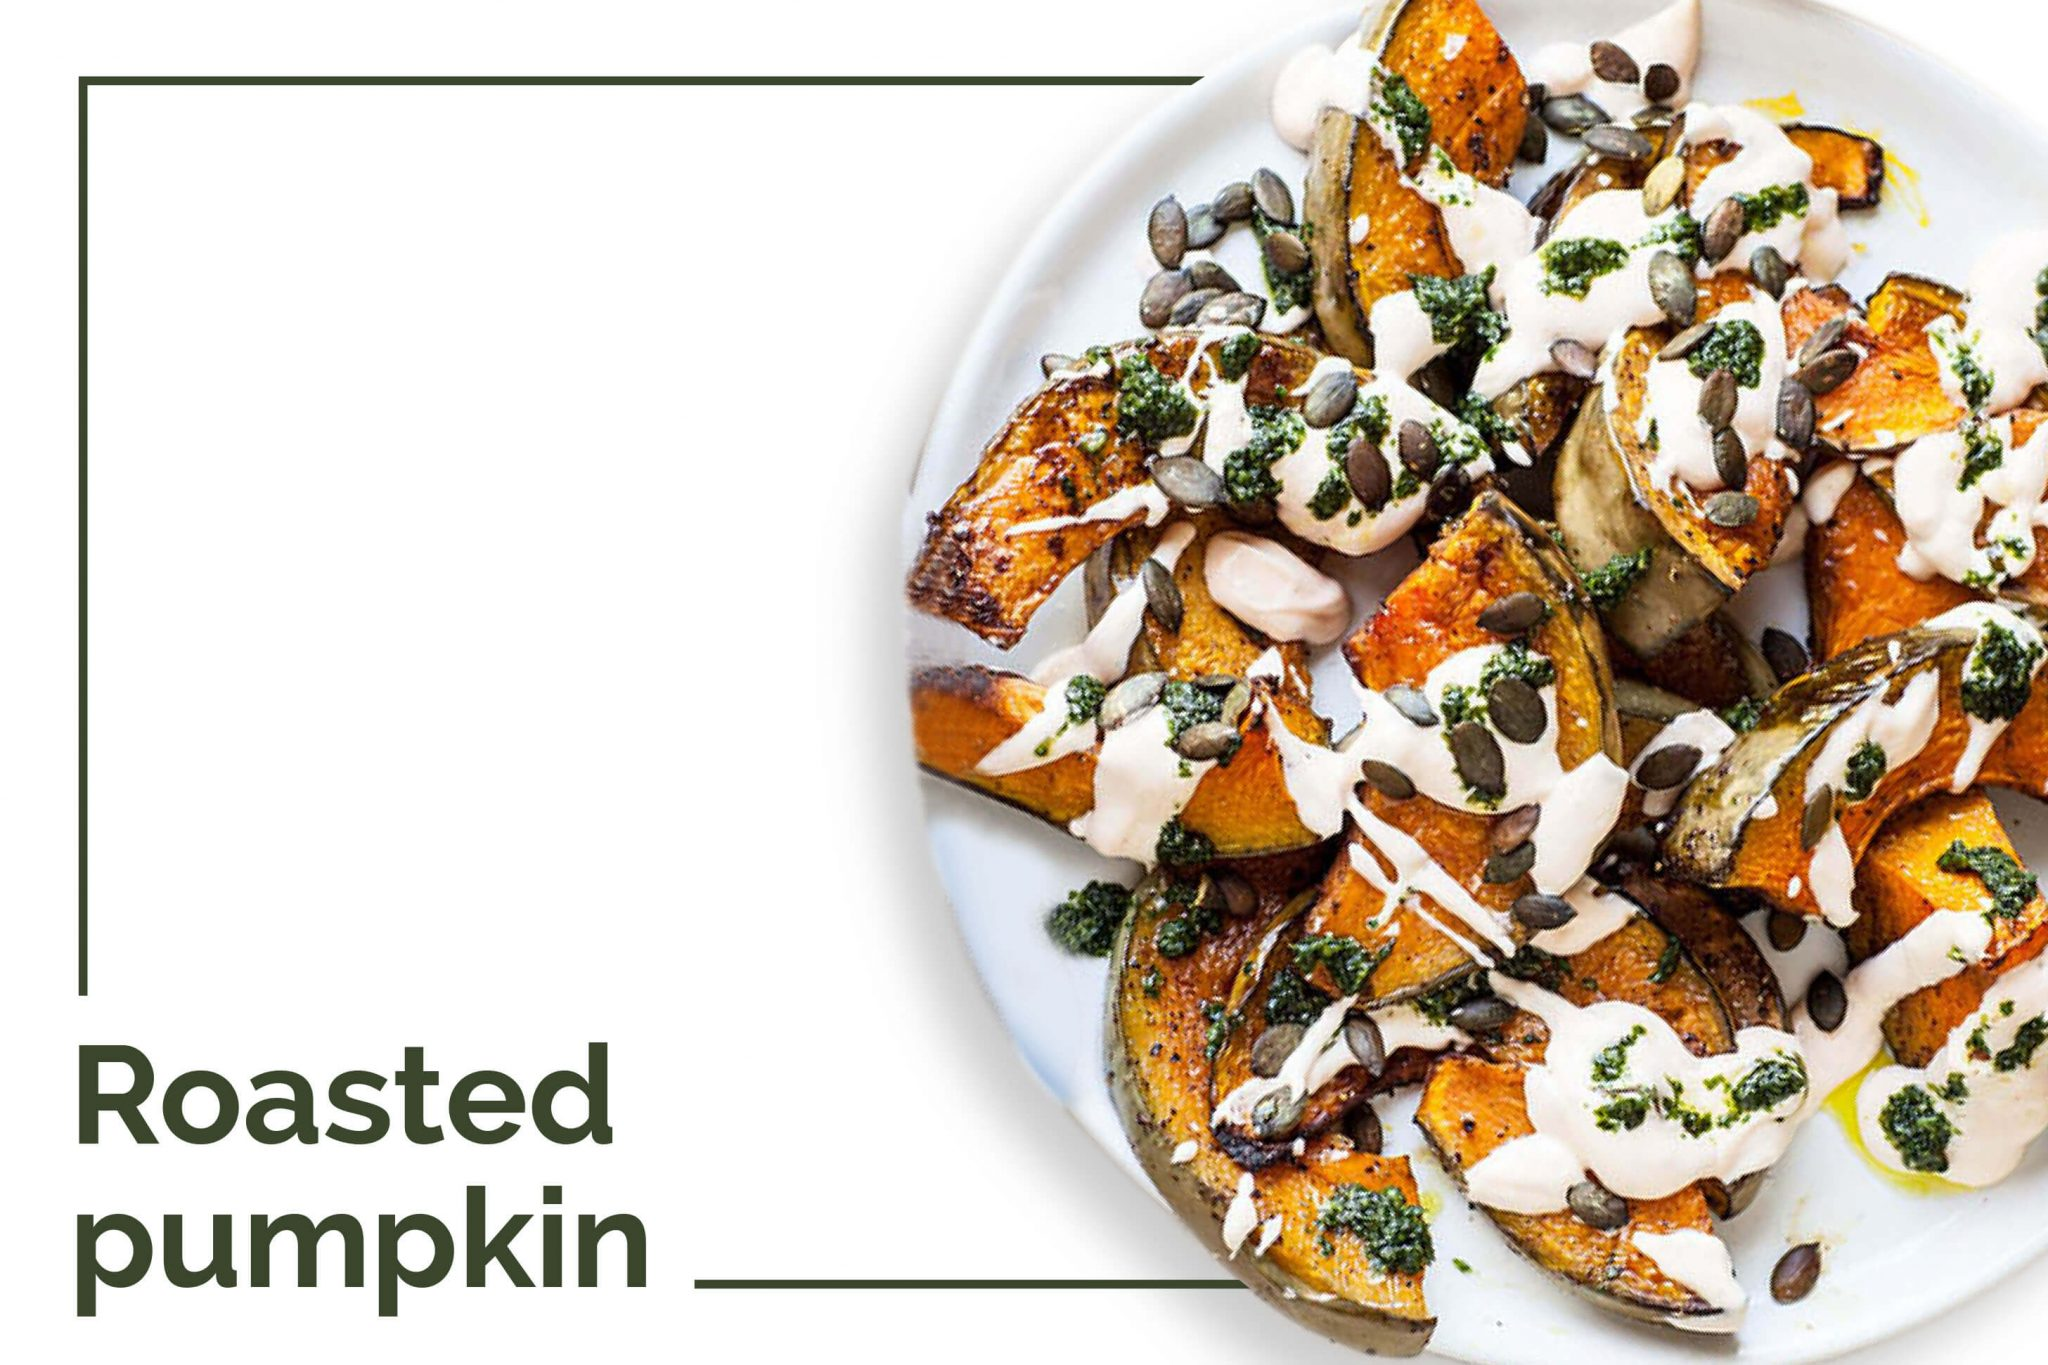 Tasty roasted pumpkin in white plate